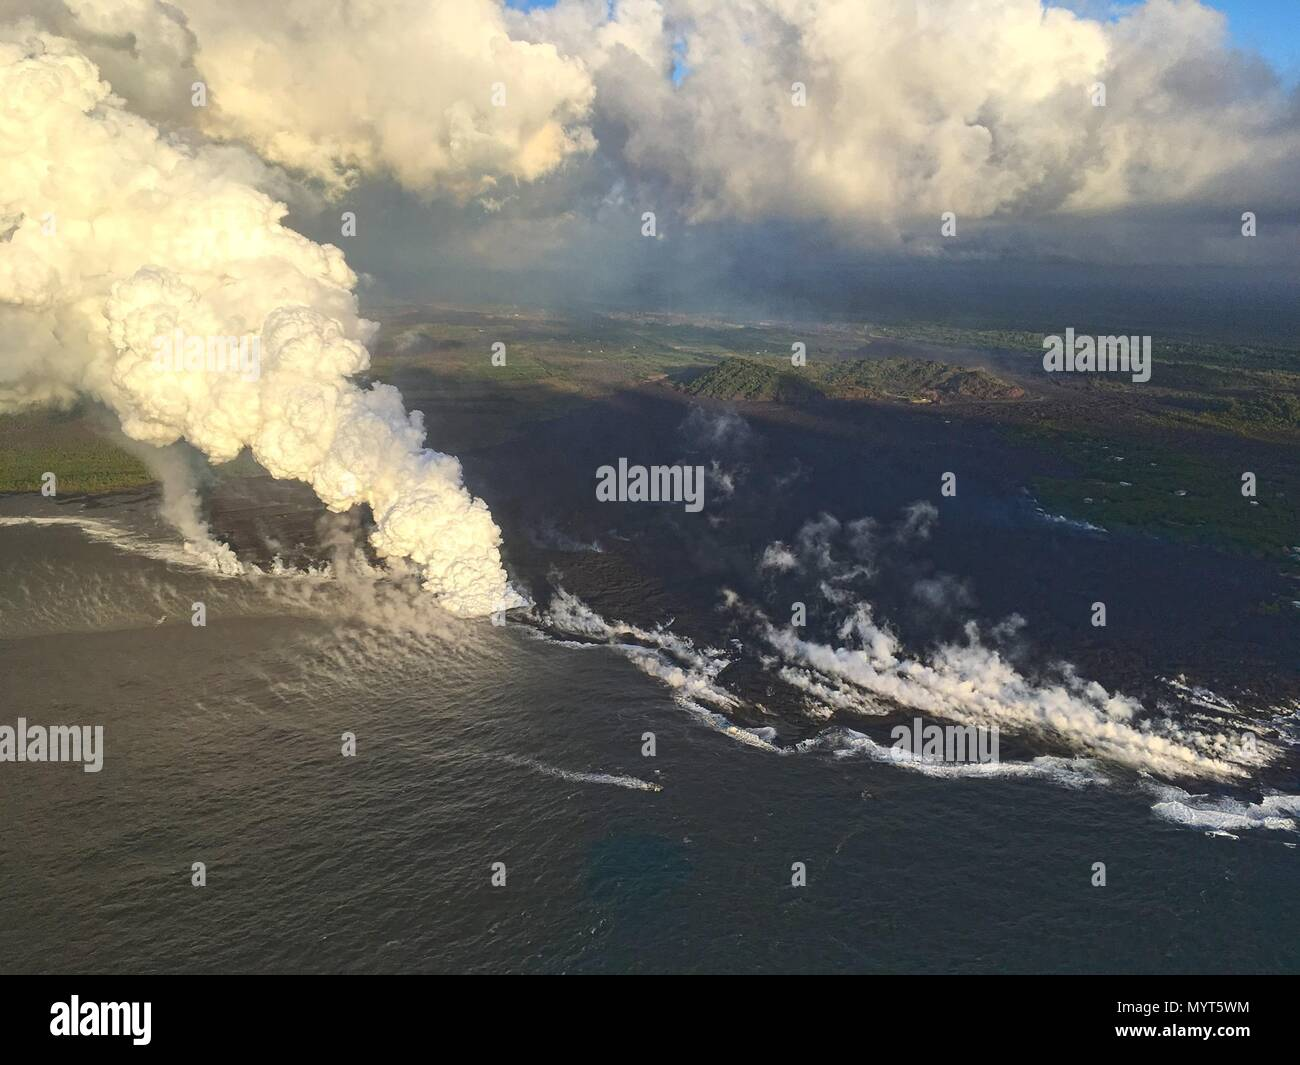 Hawaii, USA. 6th June, 2018. Lava flows into Kapoho Bay destroying forest and homes in the Vacationland area caused by the eruption of the Kilauea volcano June 6, 2018 in Hawaii. The recent eruption continues destroying homes, forcing evacuations and spewing lava and poison gas on the Big Island of Hawaii. Credit: Planetpix/Alamy Live News Stock Photo